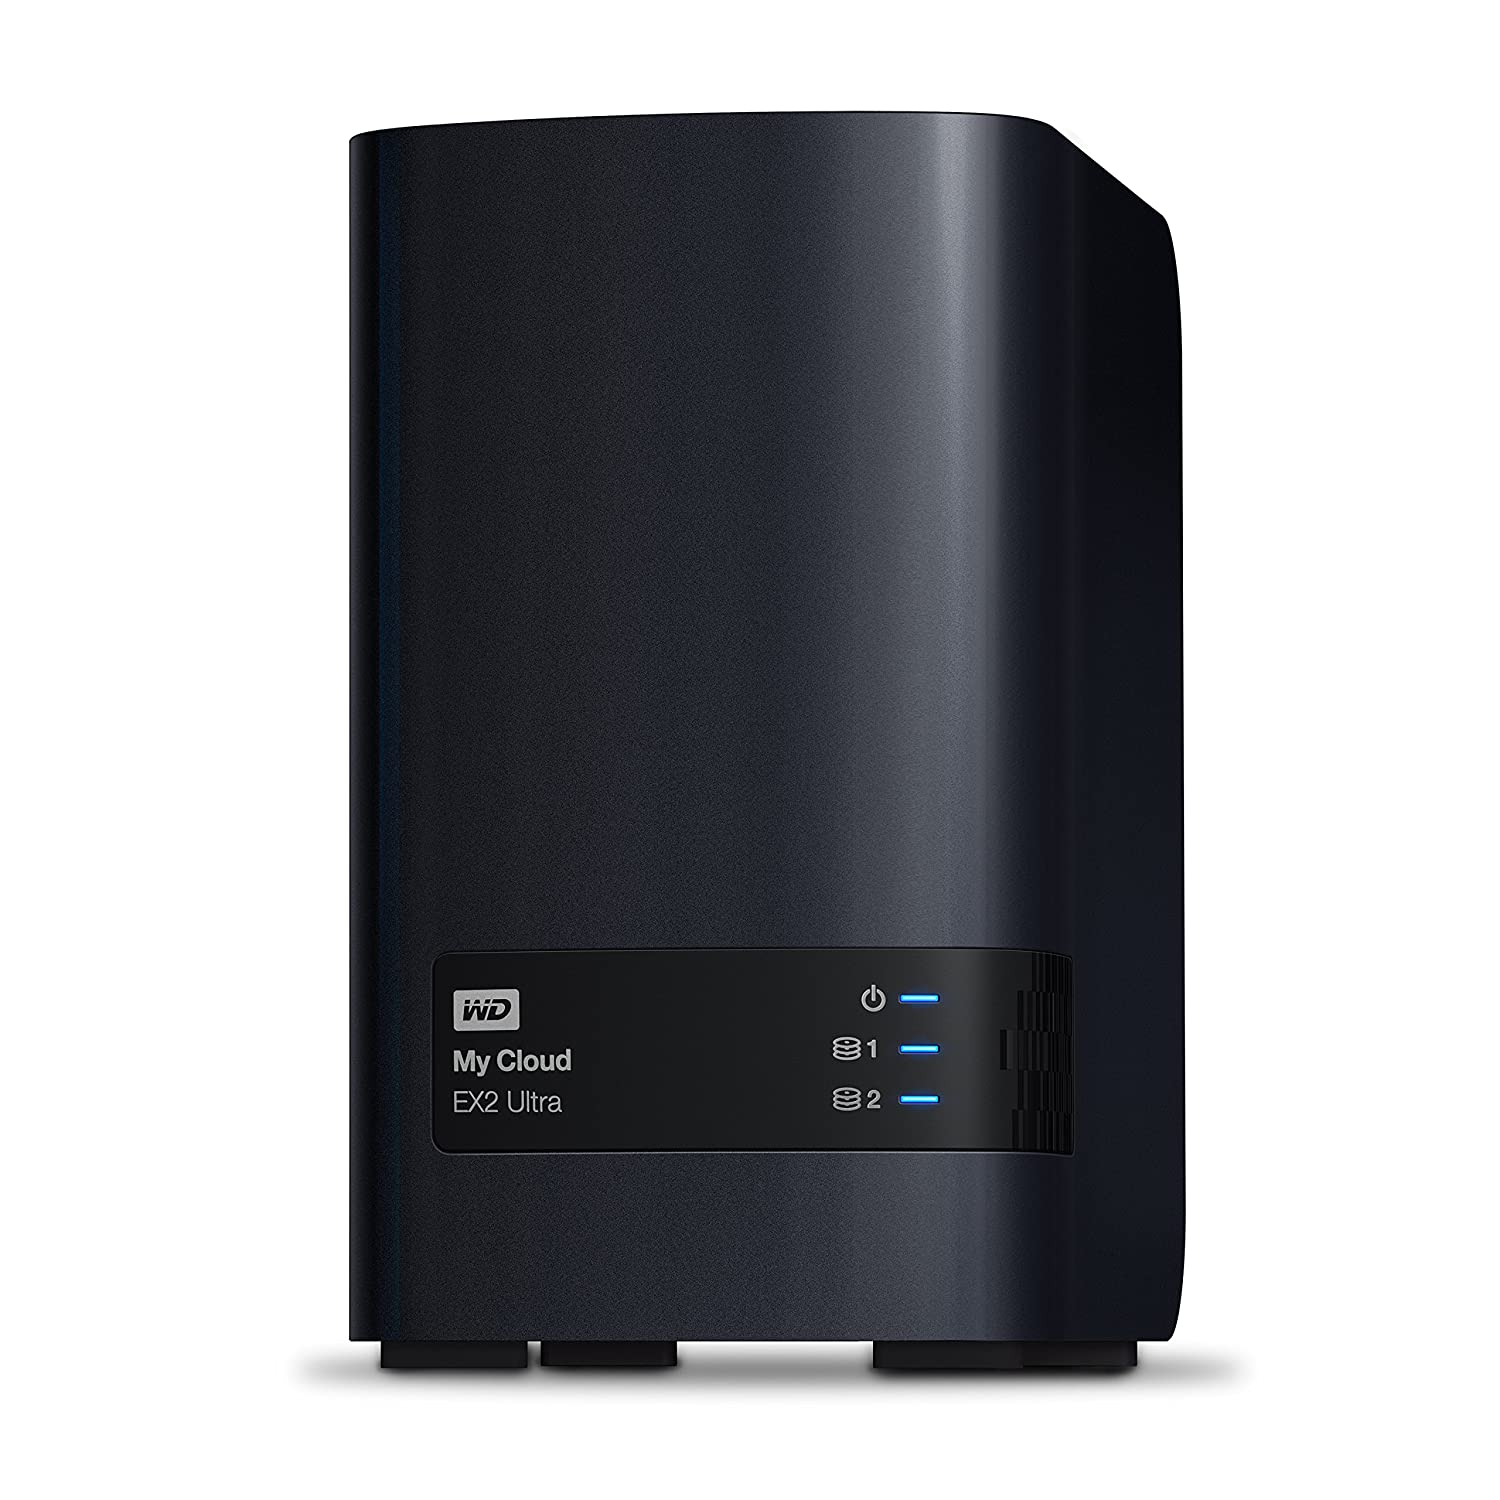 WD My Cloud EX2 Ultra Network Attached Storage - NAS - WDBVBZ0120JCH-NESN - Review